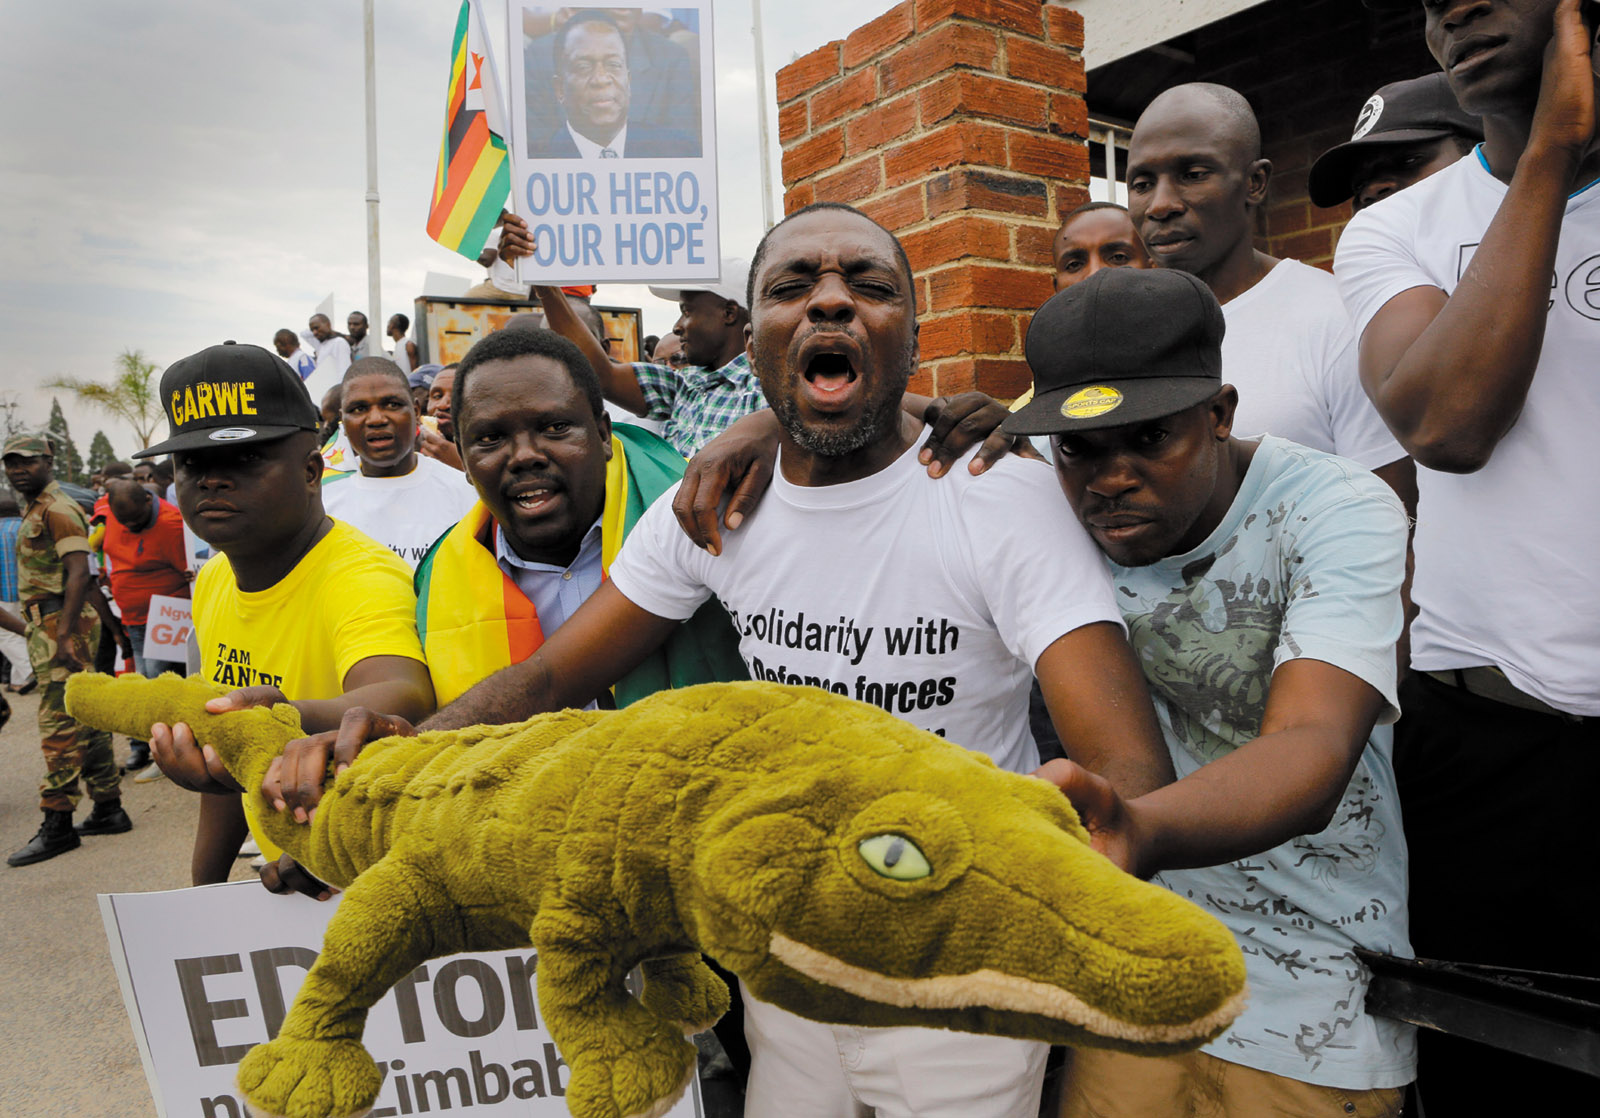 Supporters of Emmerson Mnangagwa waiting for his return to Zimbabwe on the day after Robert Mugabe resigned as president, Harare, November 2017